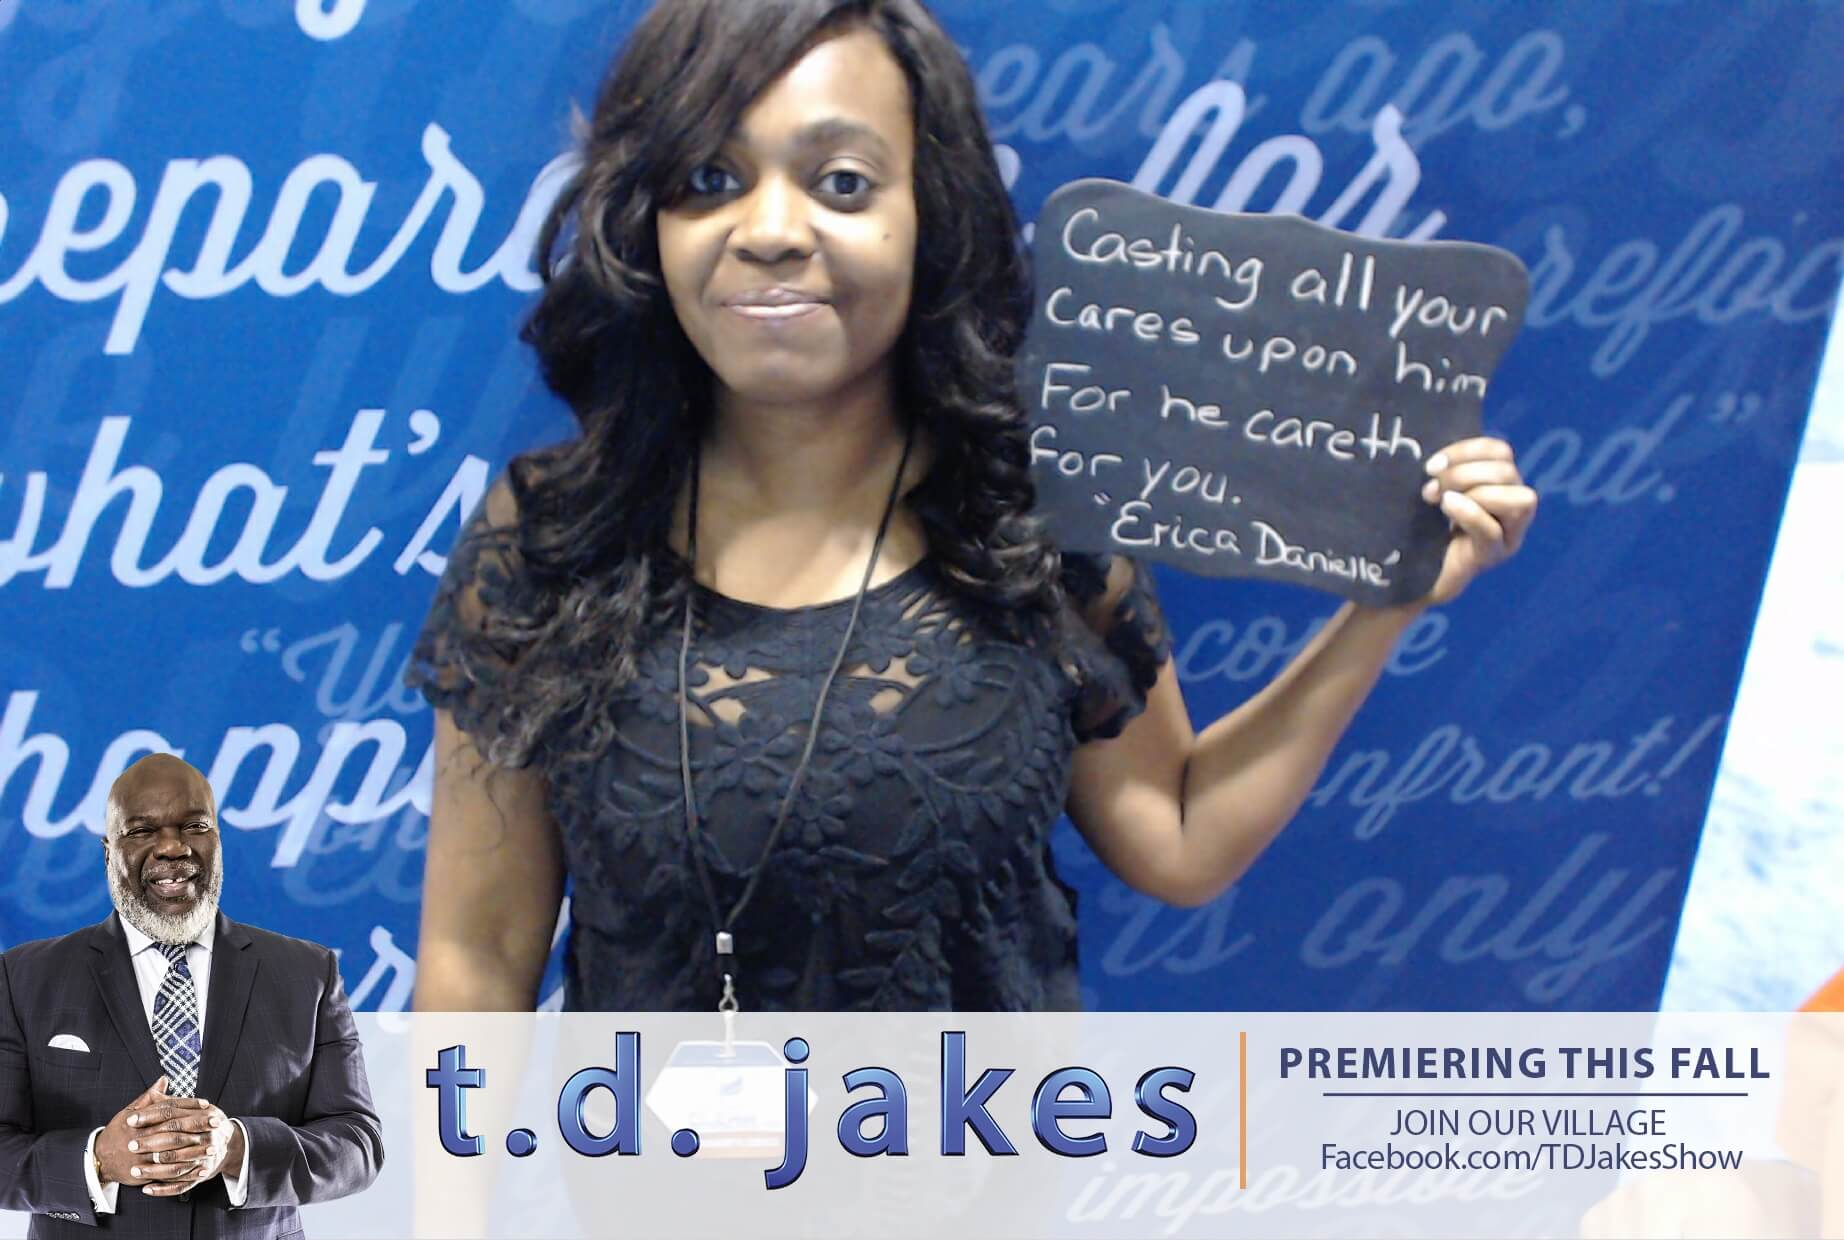 td jakes photo booth